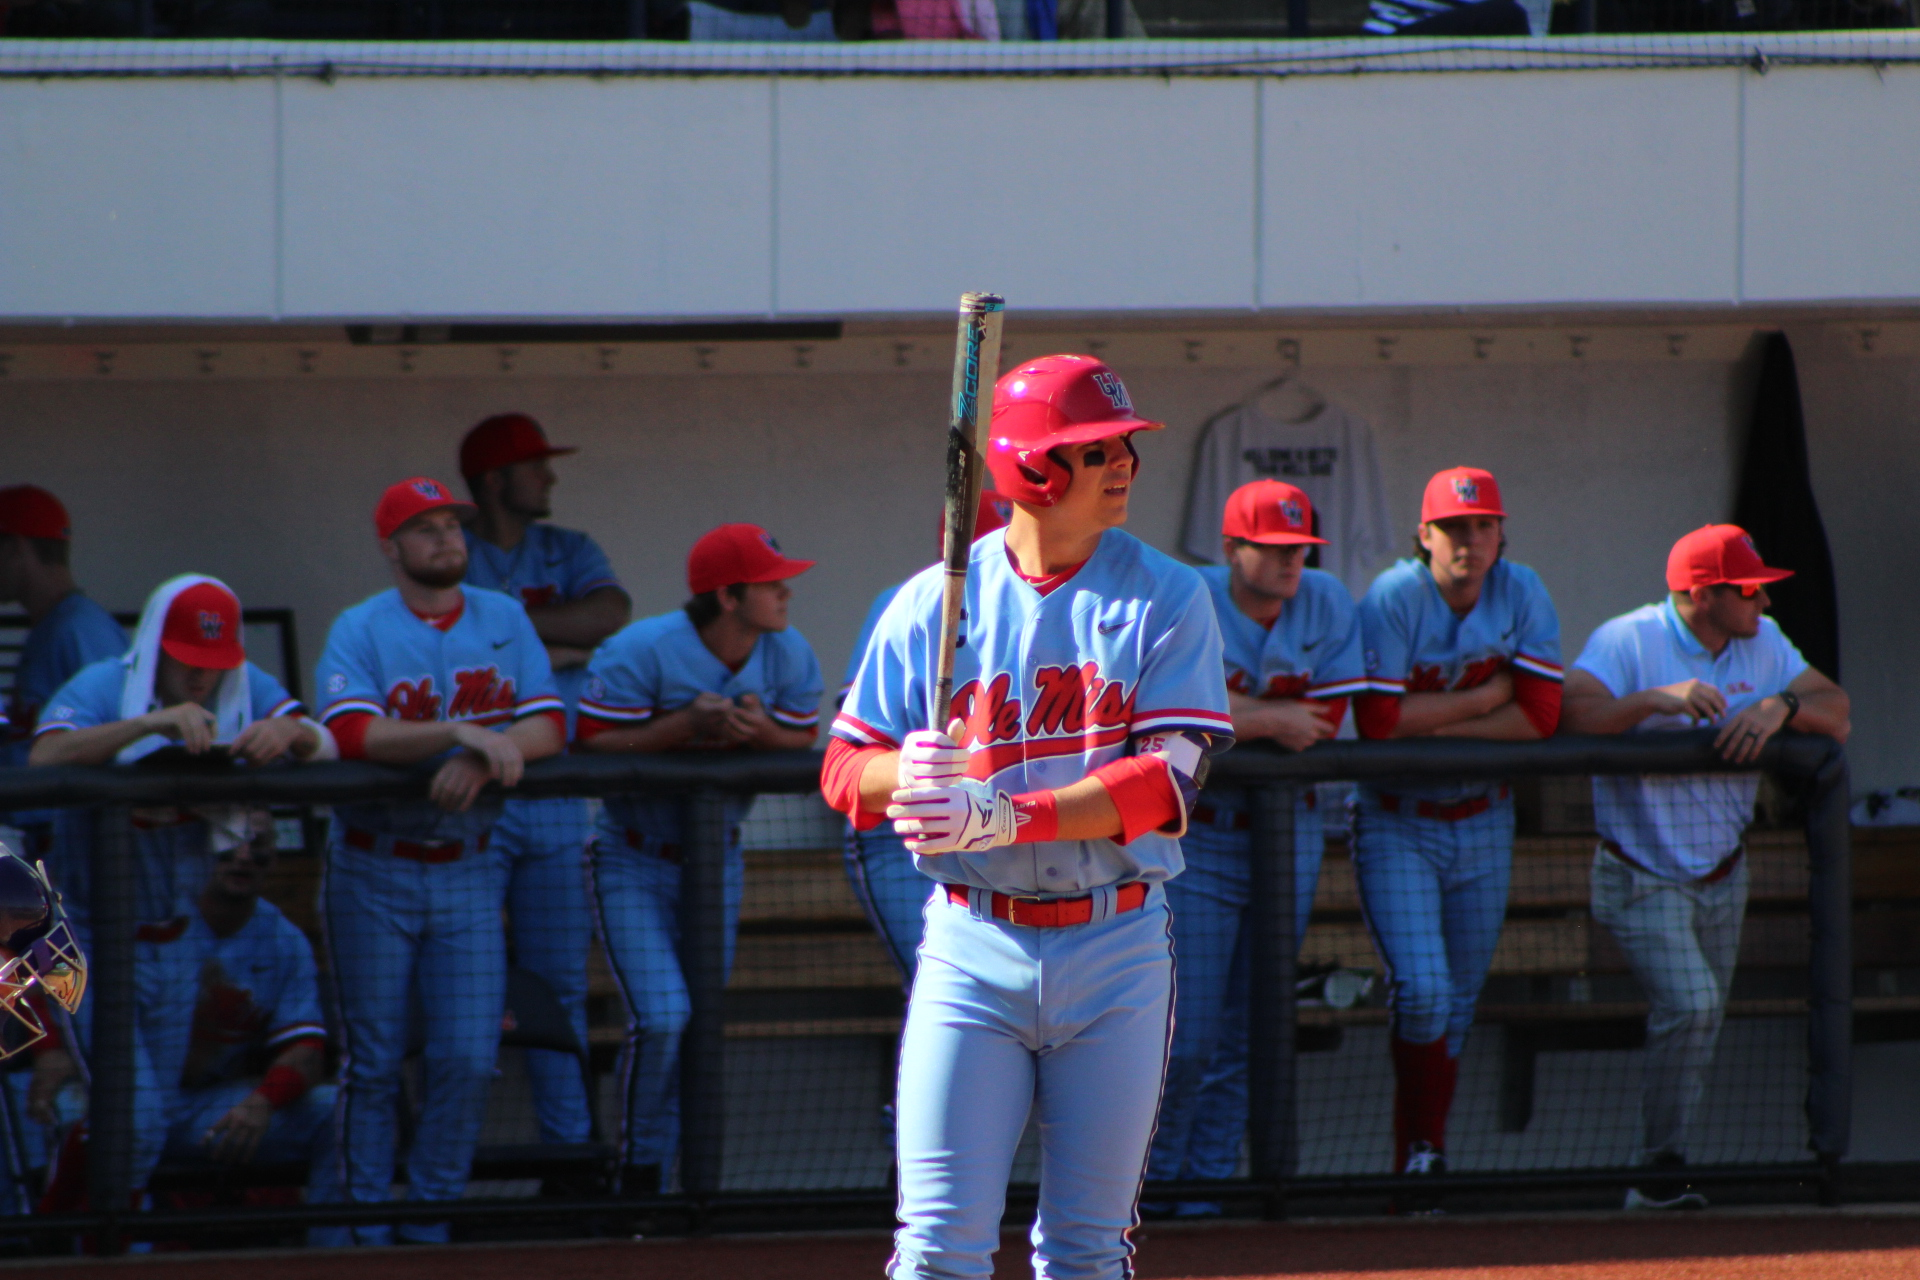 Rebs win, Vols-Bulldogs lose in SEC Tournament